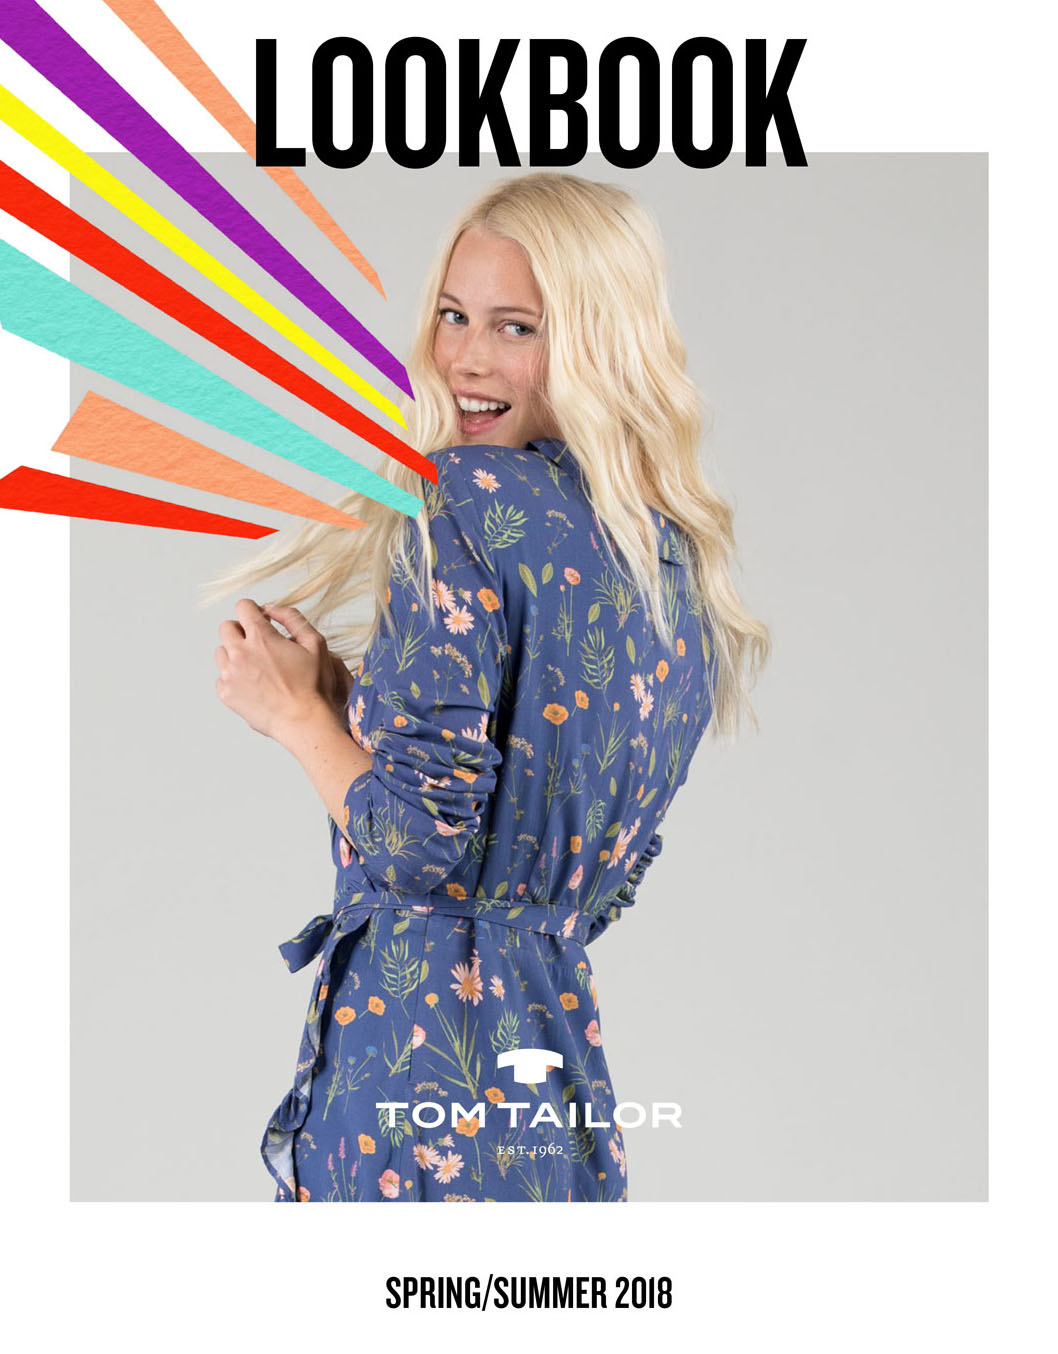 Www Tom Tailor Tom Tailor Lookbook Tonwert21 Fotografie